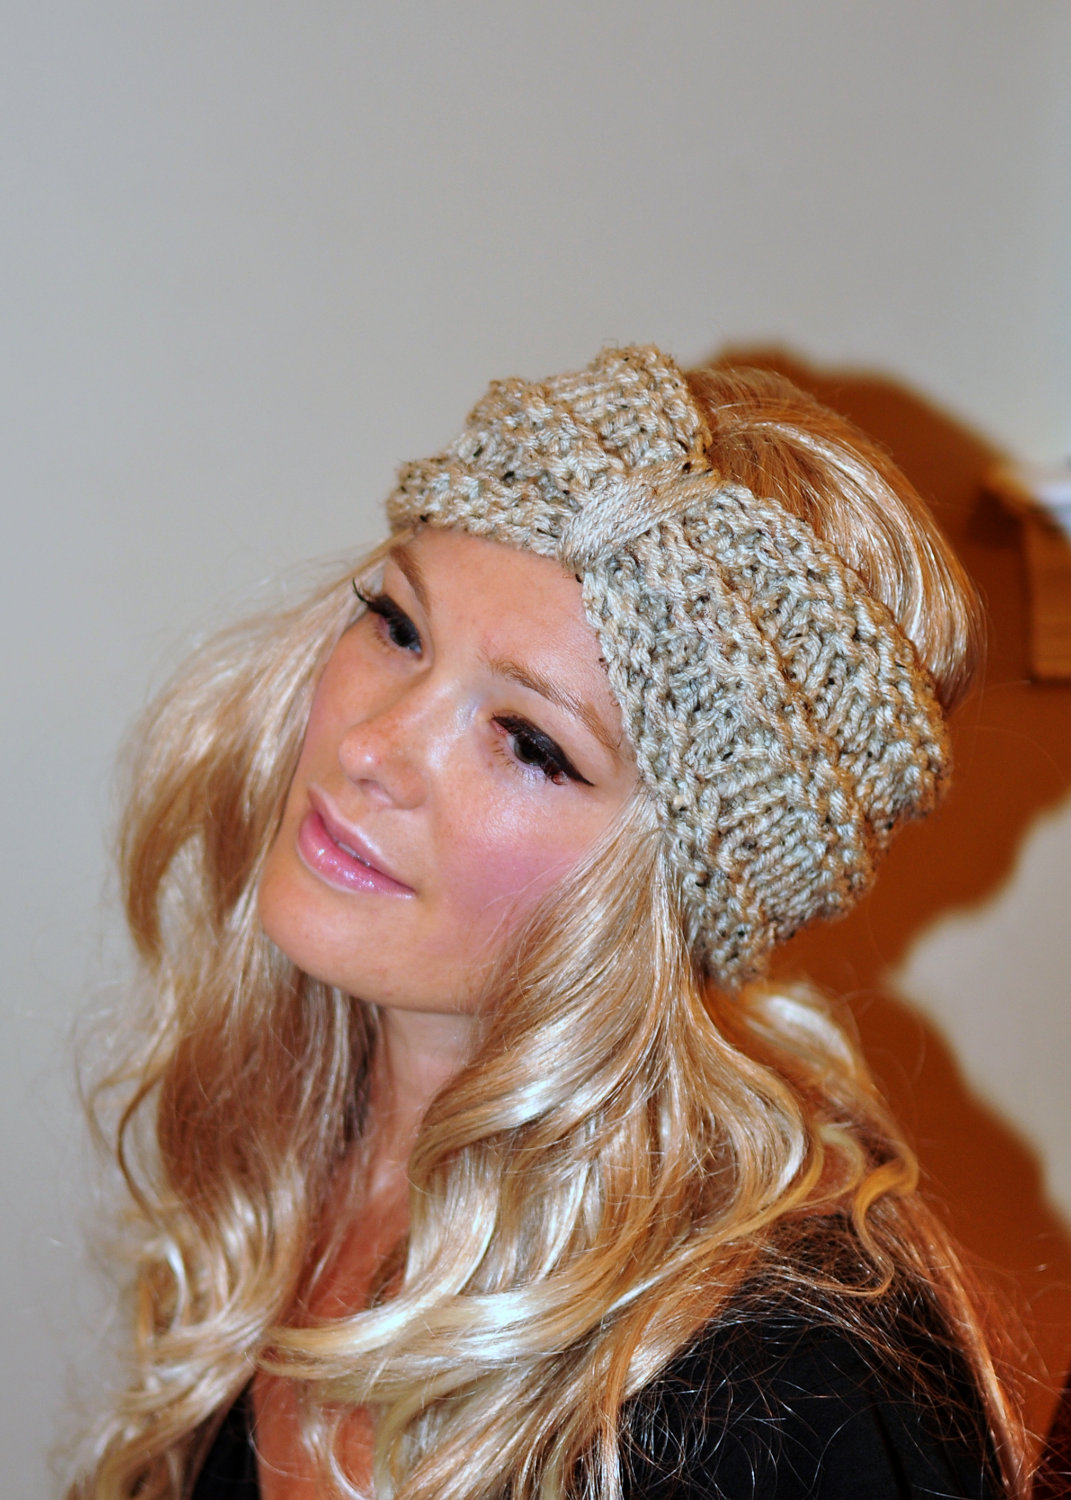 How to Wear a Knitted Winter Headband